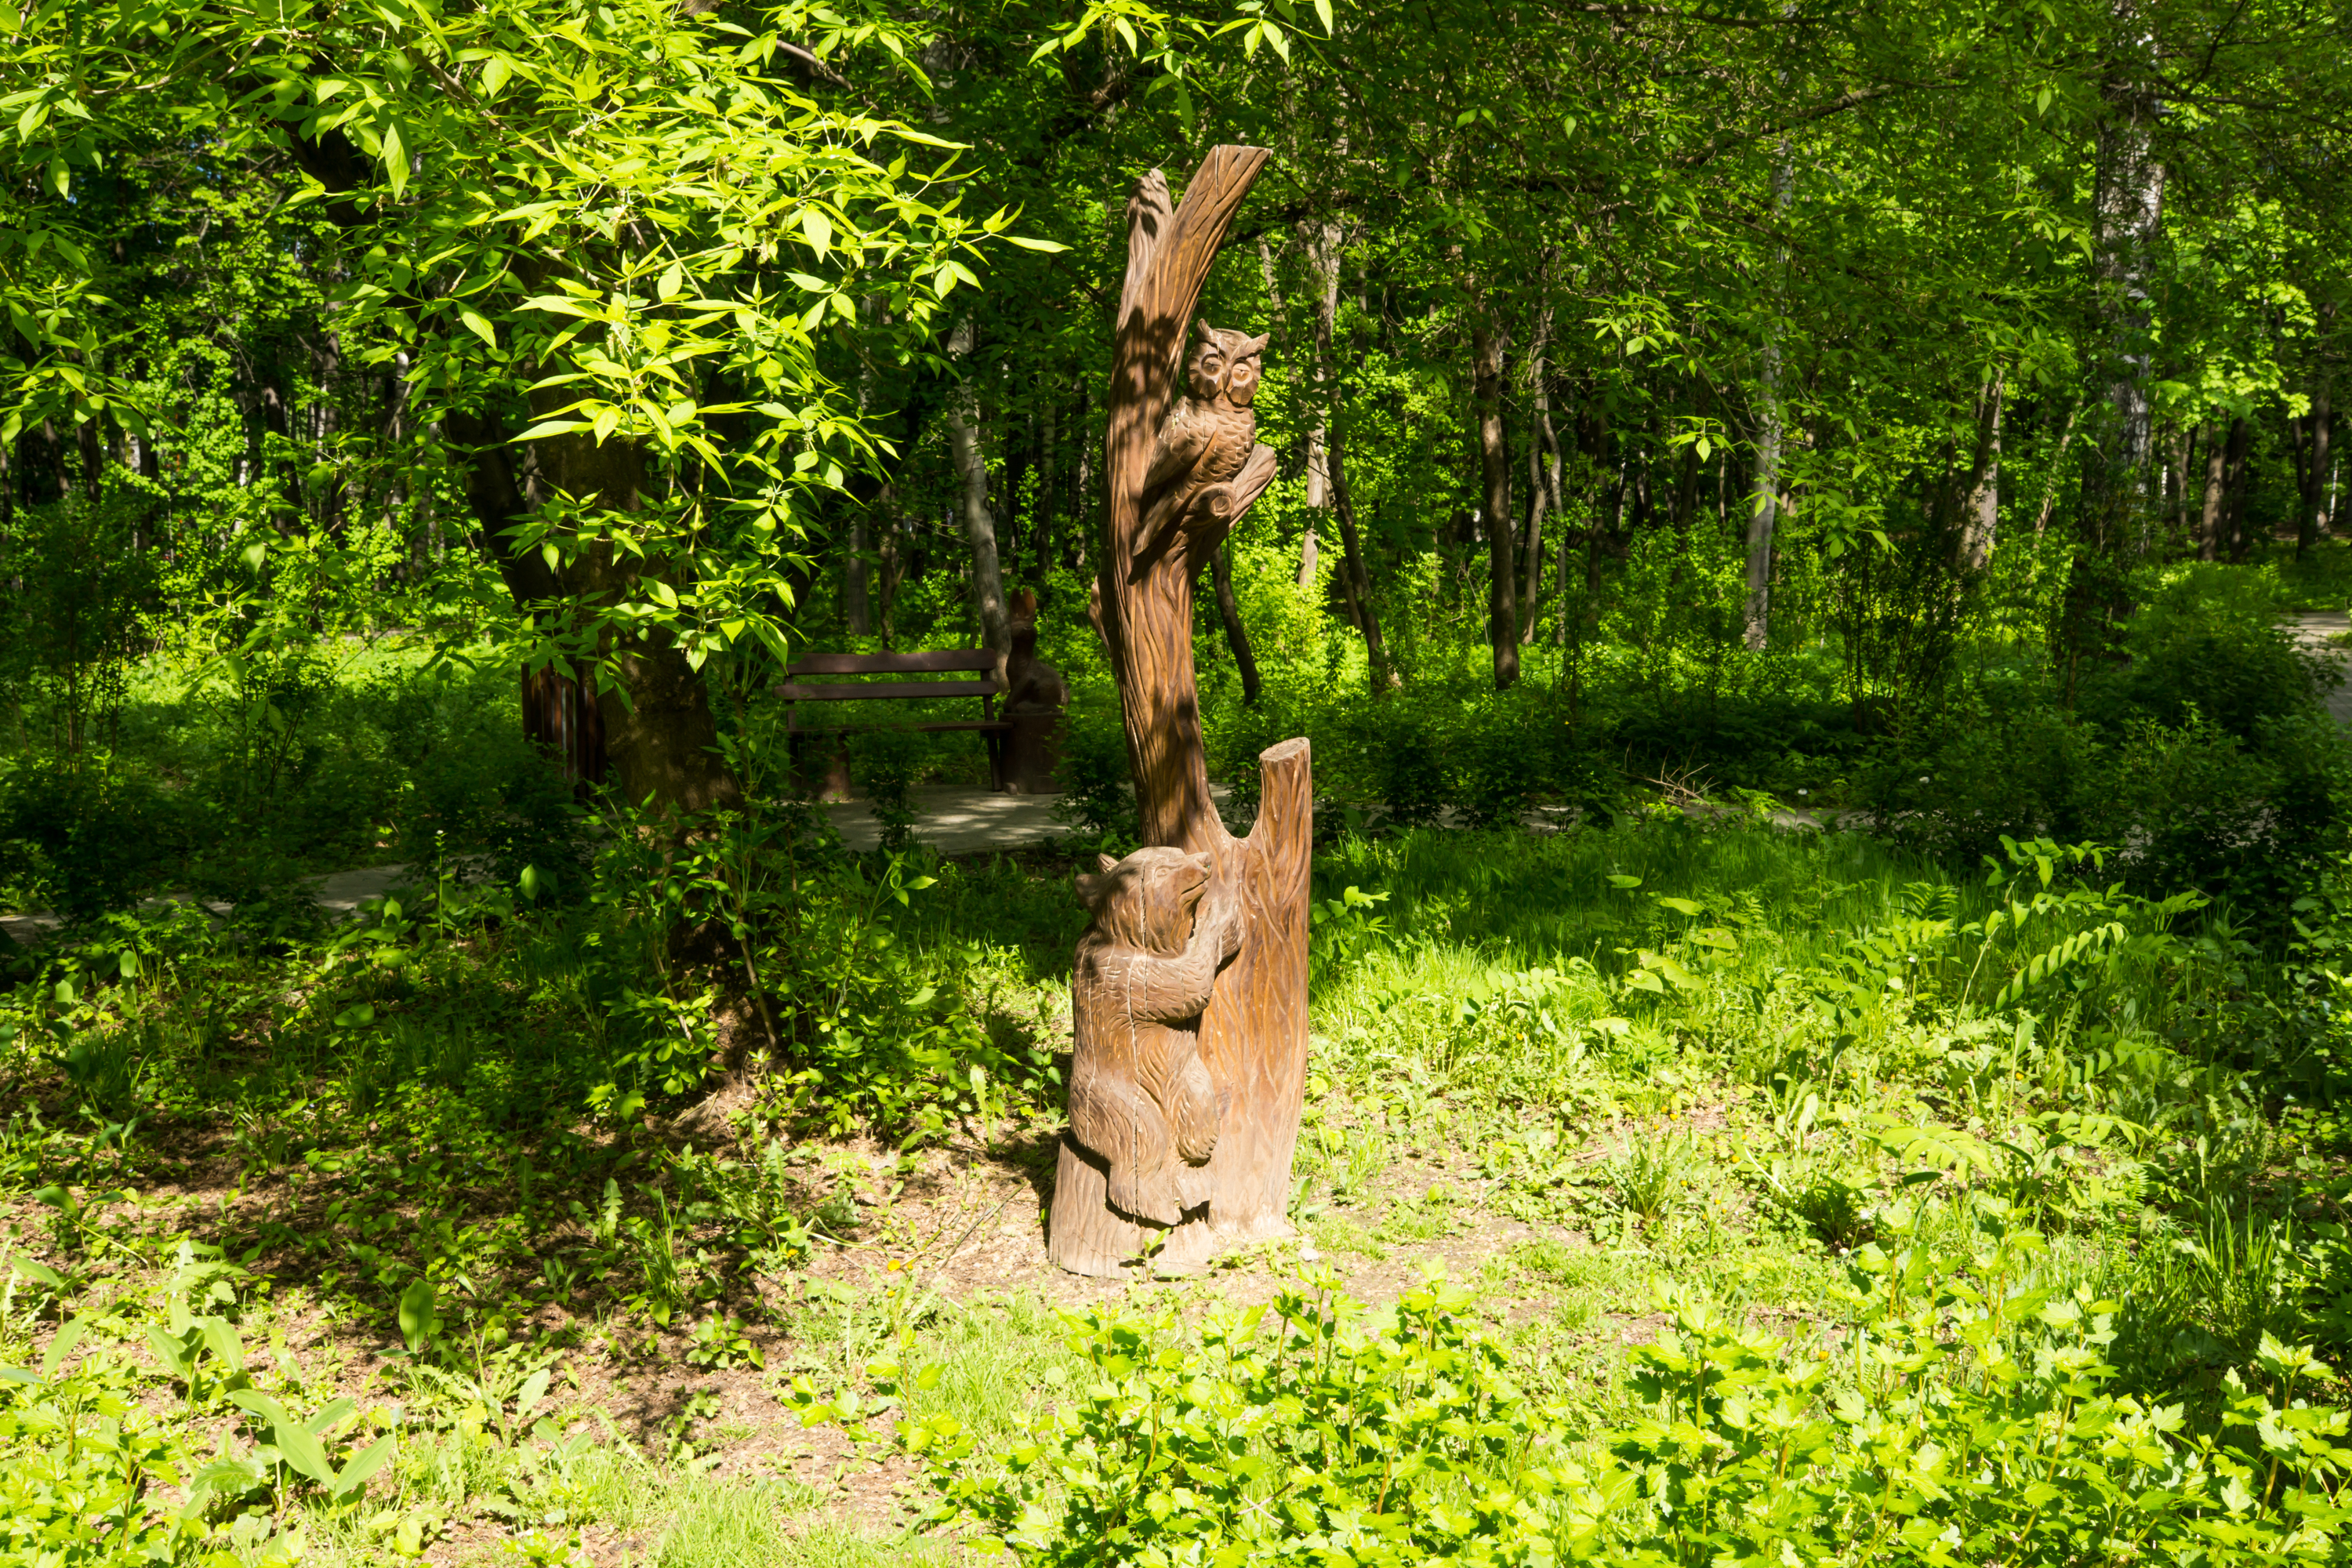 In izmaylovskiy Park has plenty of carved wooden figures